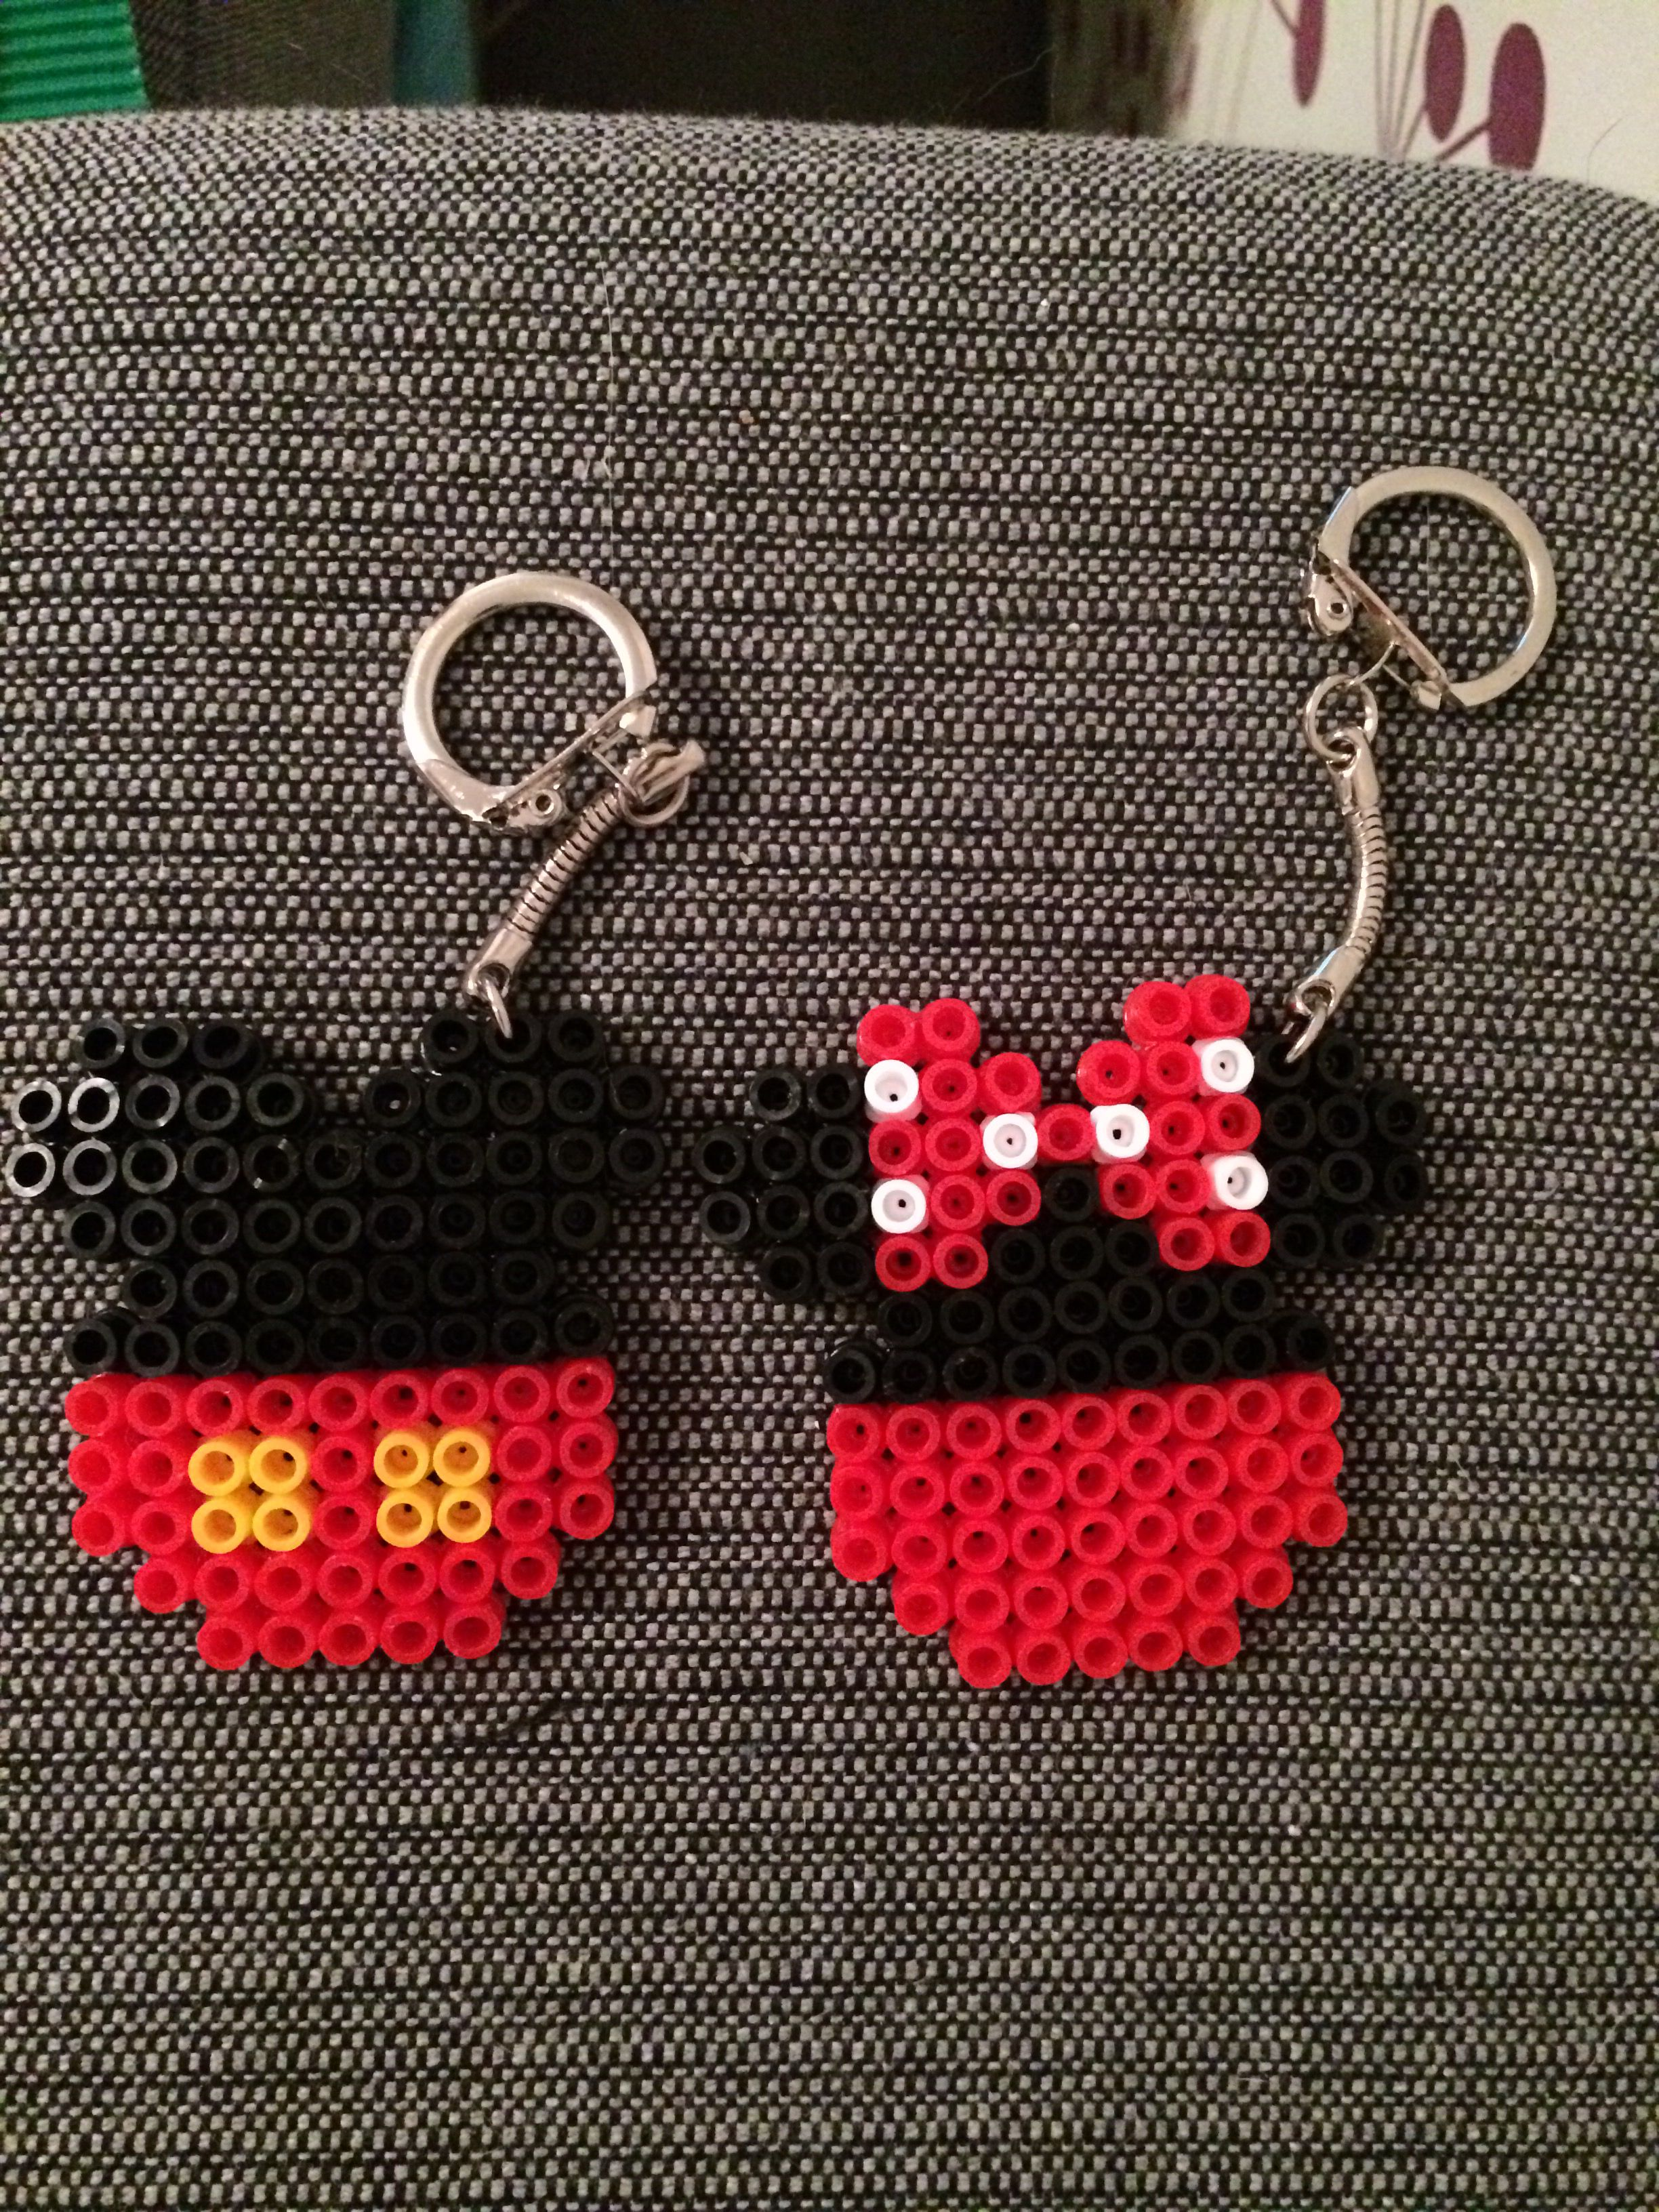 20 Pluto Mickey Mouse Pixel Art Pictures And Ideas On Meta Networks